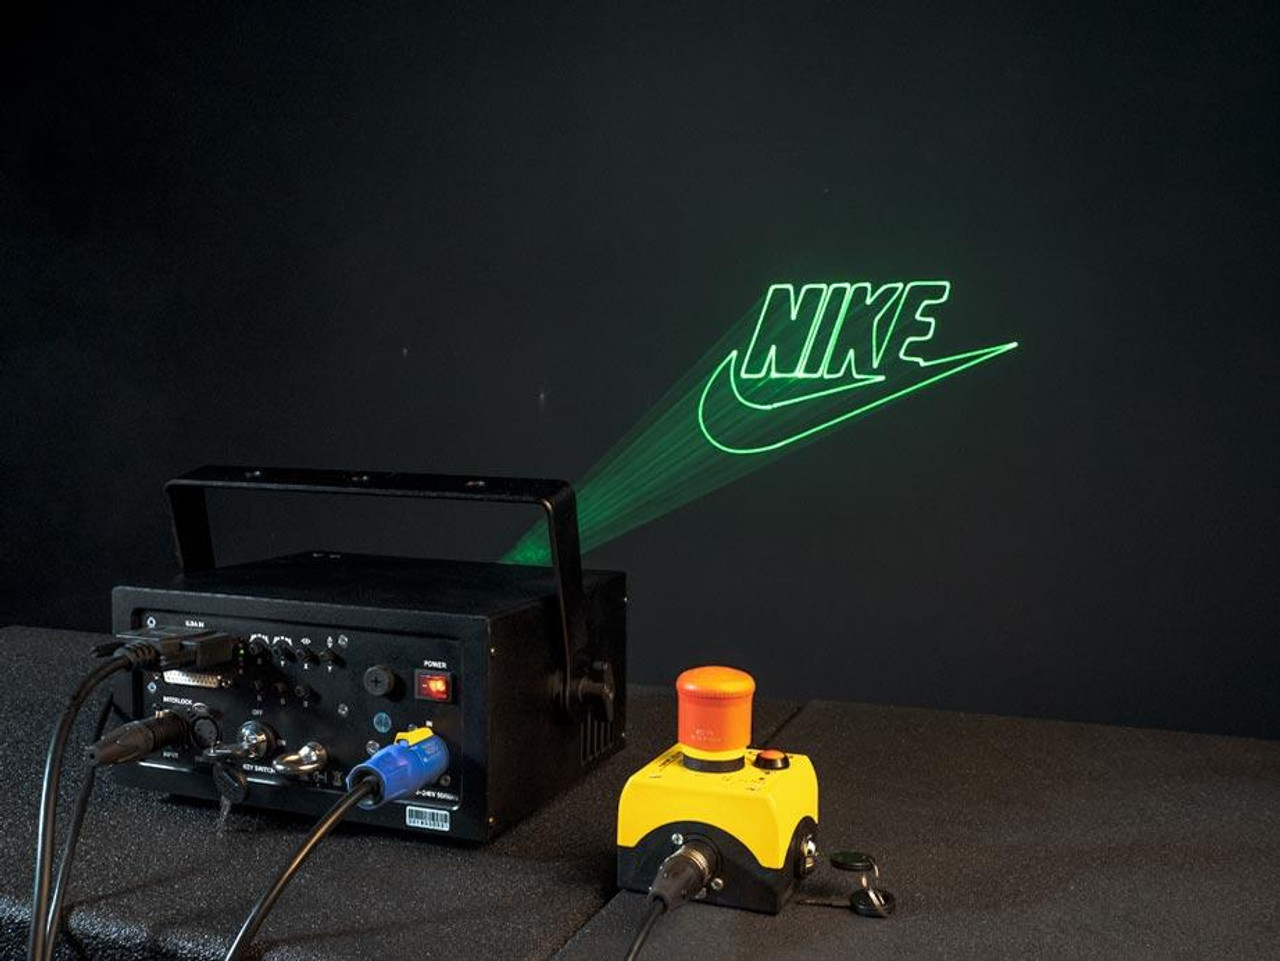 Unity RAW 10 Laser Light Show Projector